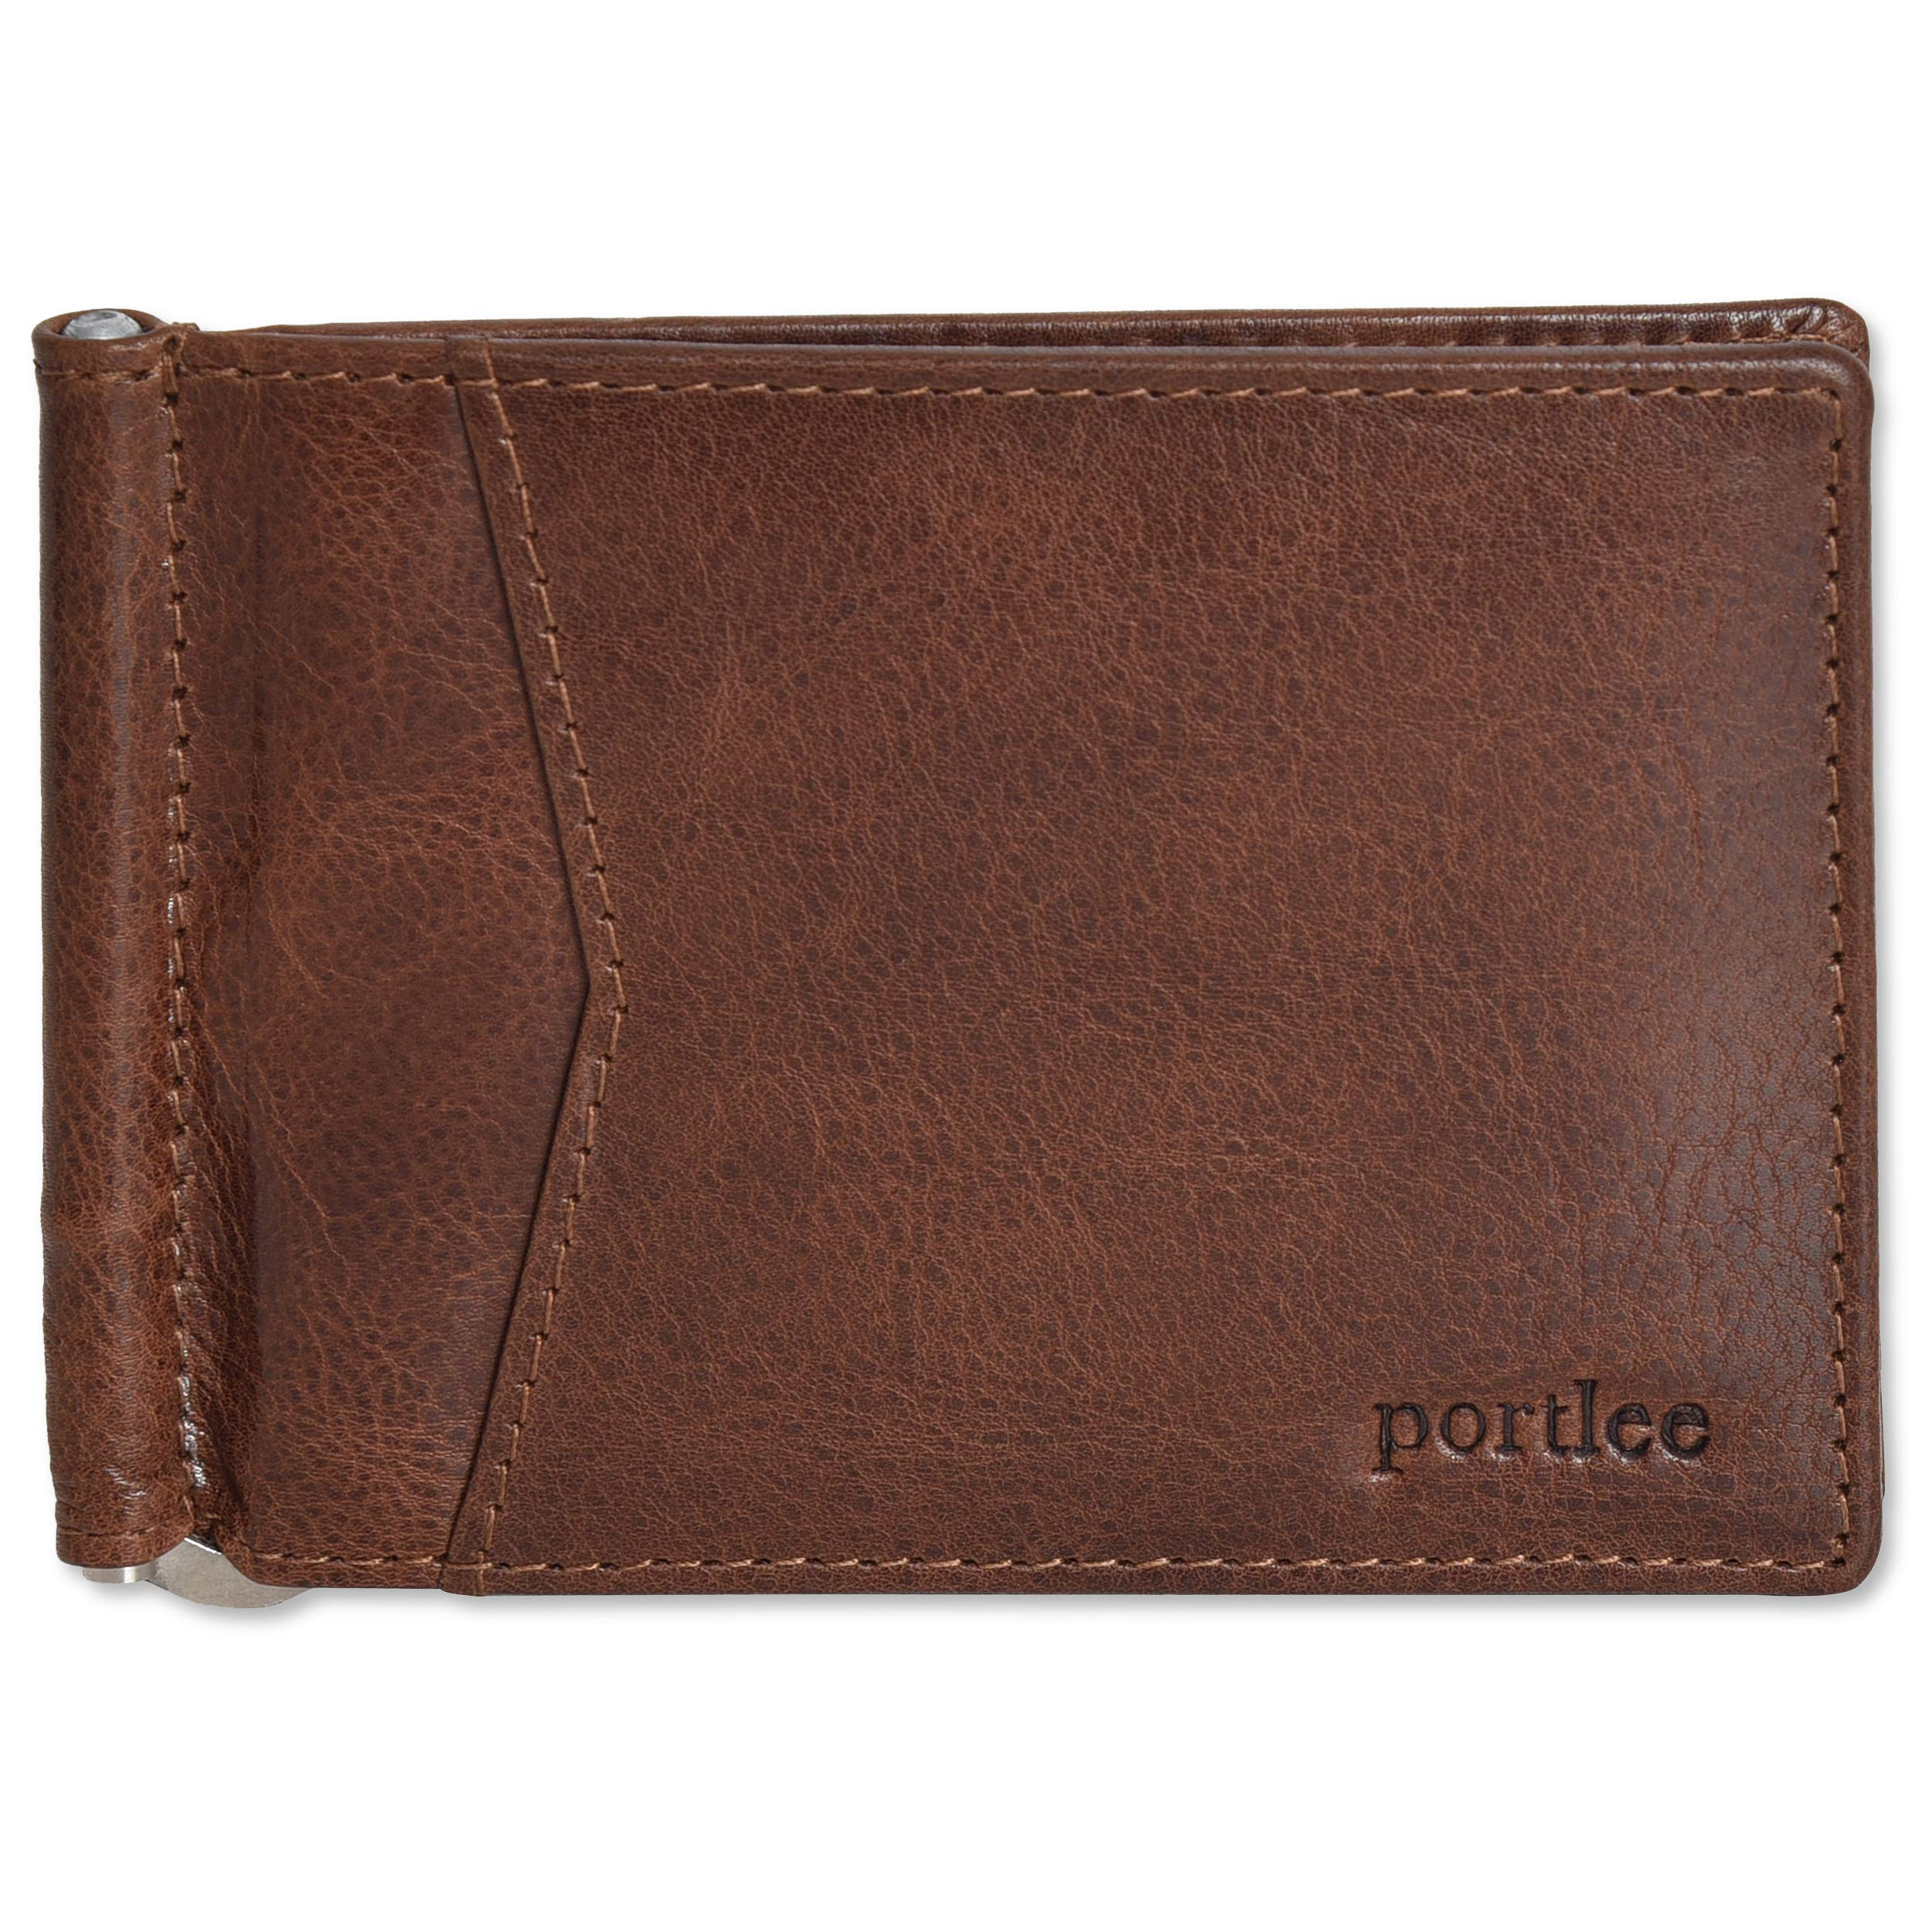 Portlee Genuine Leather Money Clip Wallet with card holder slots (brown) product image